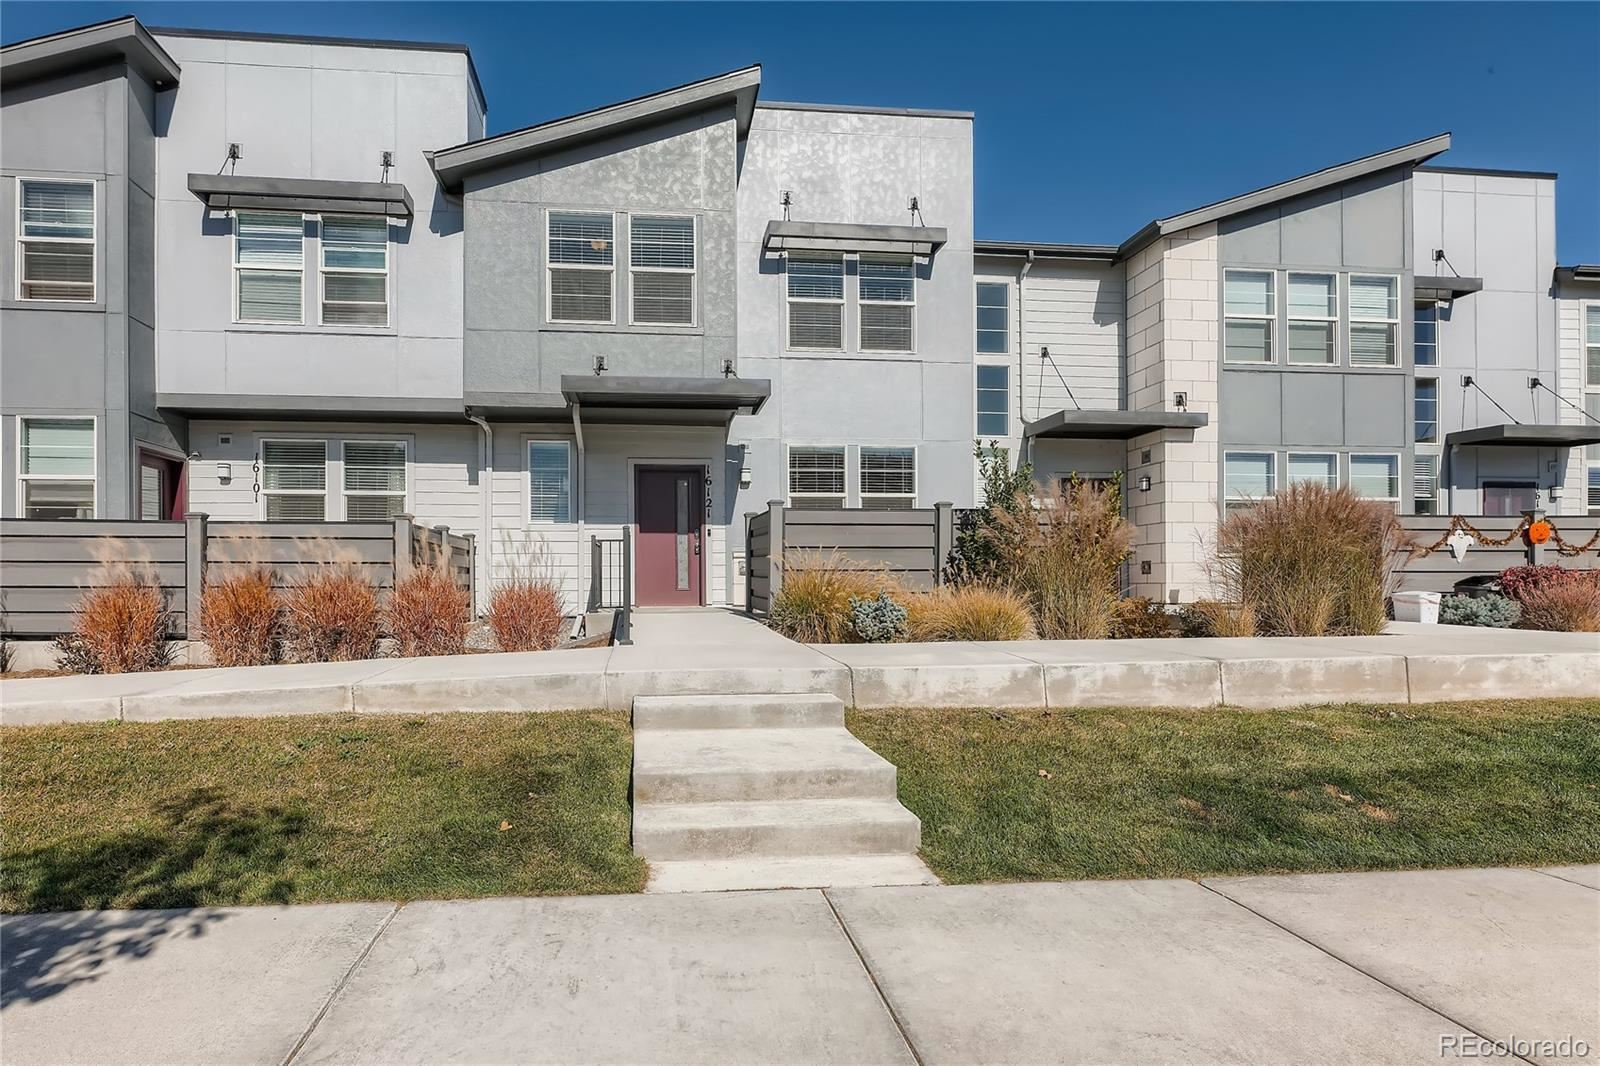 Photo of 16121 Bolling Drive, Denver, CO 80239 (MLS # 6170070)